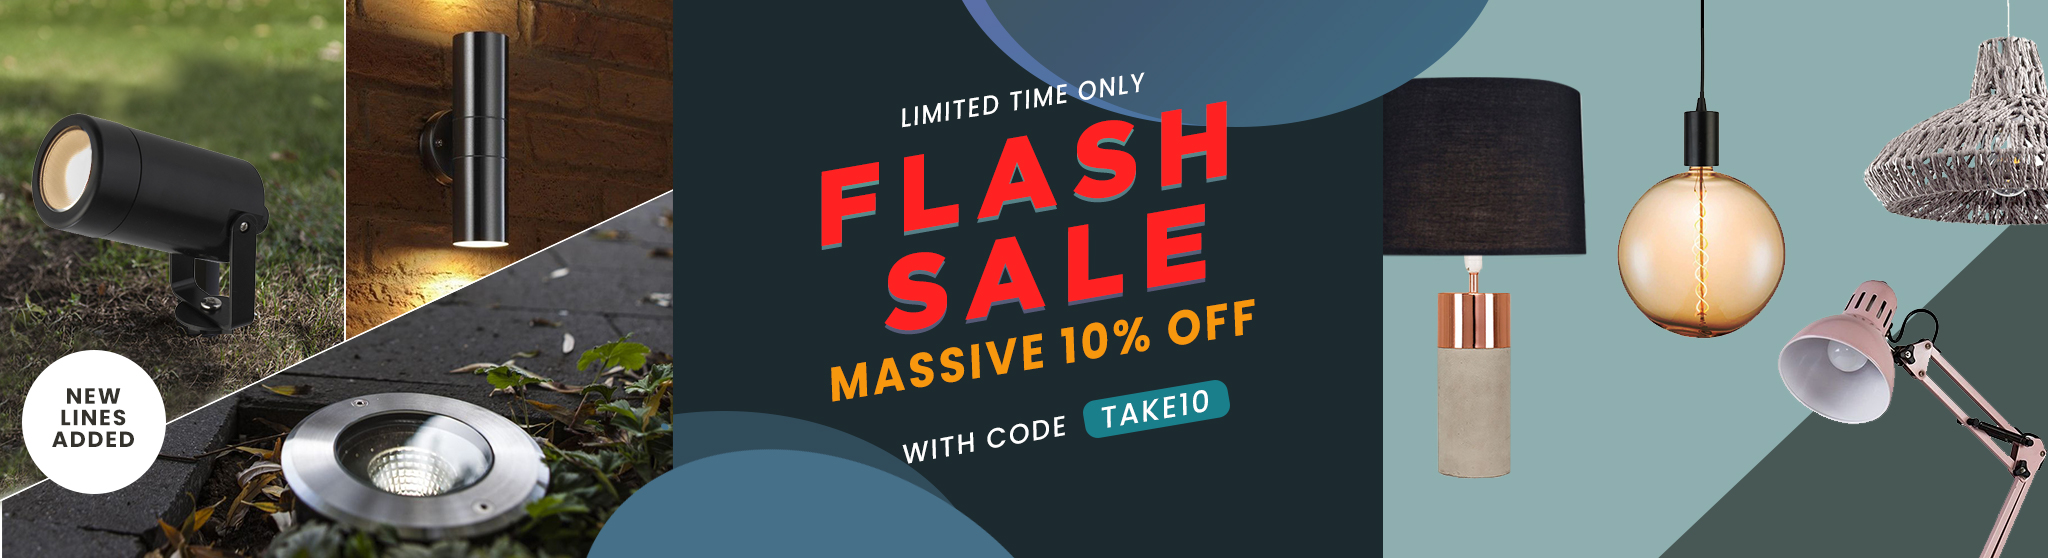 EXTRA 10% OFF NOW